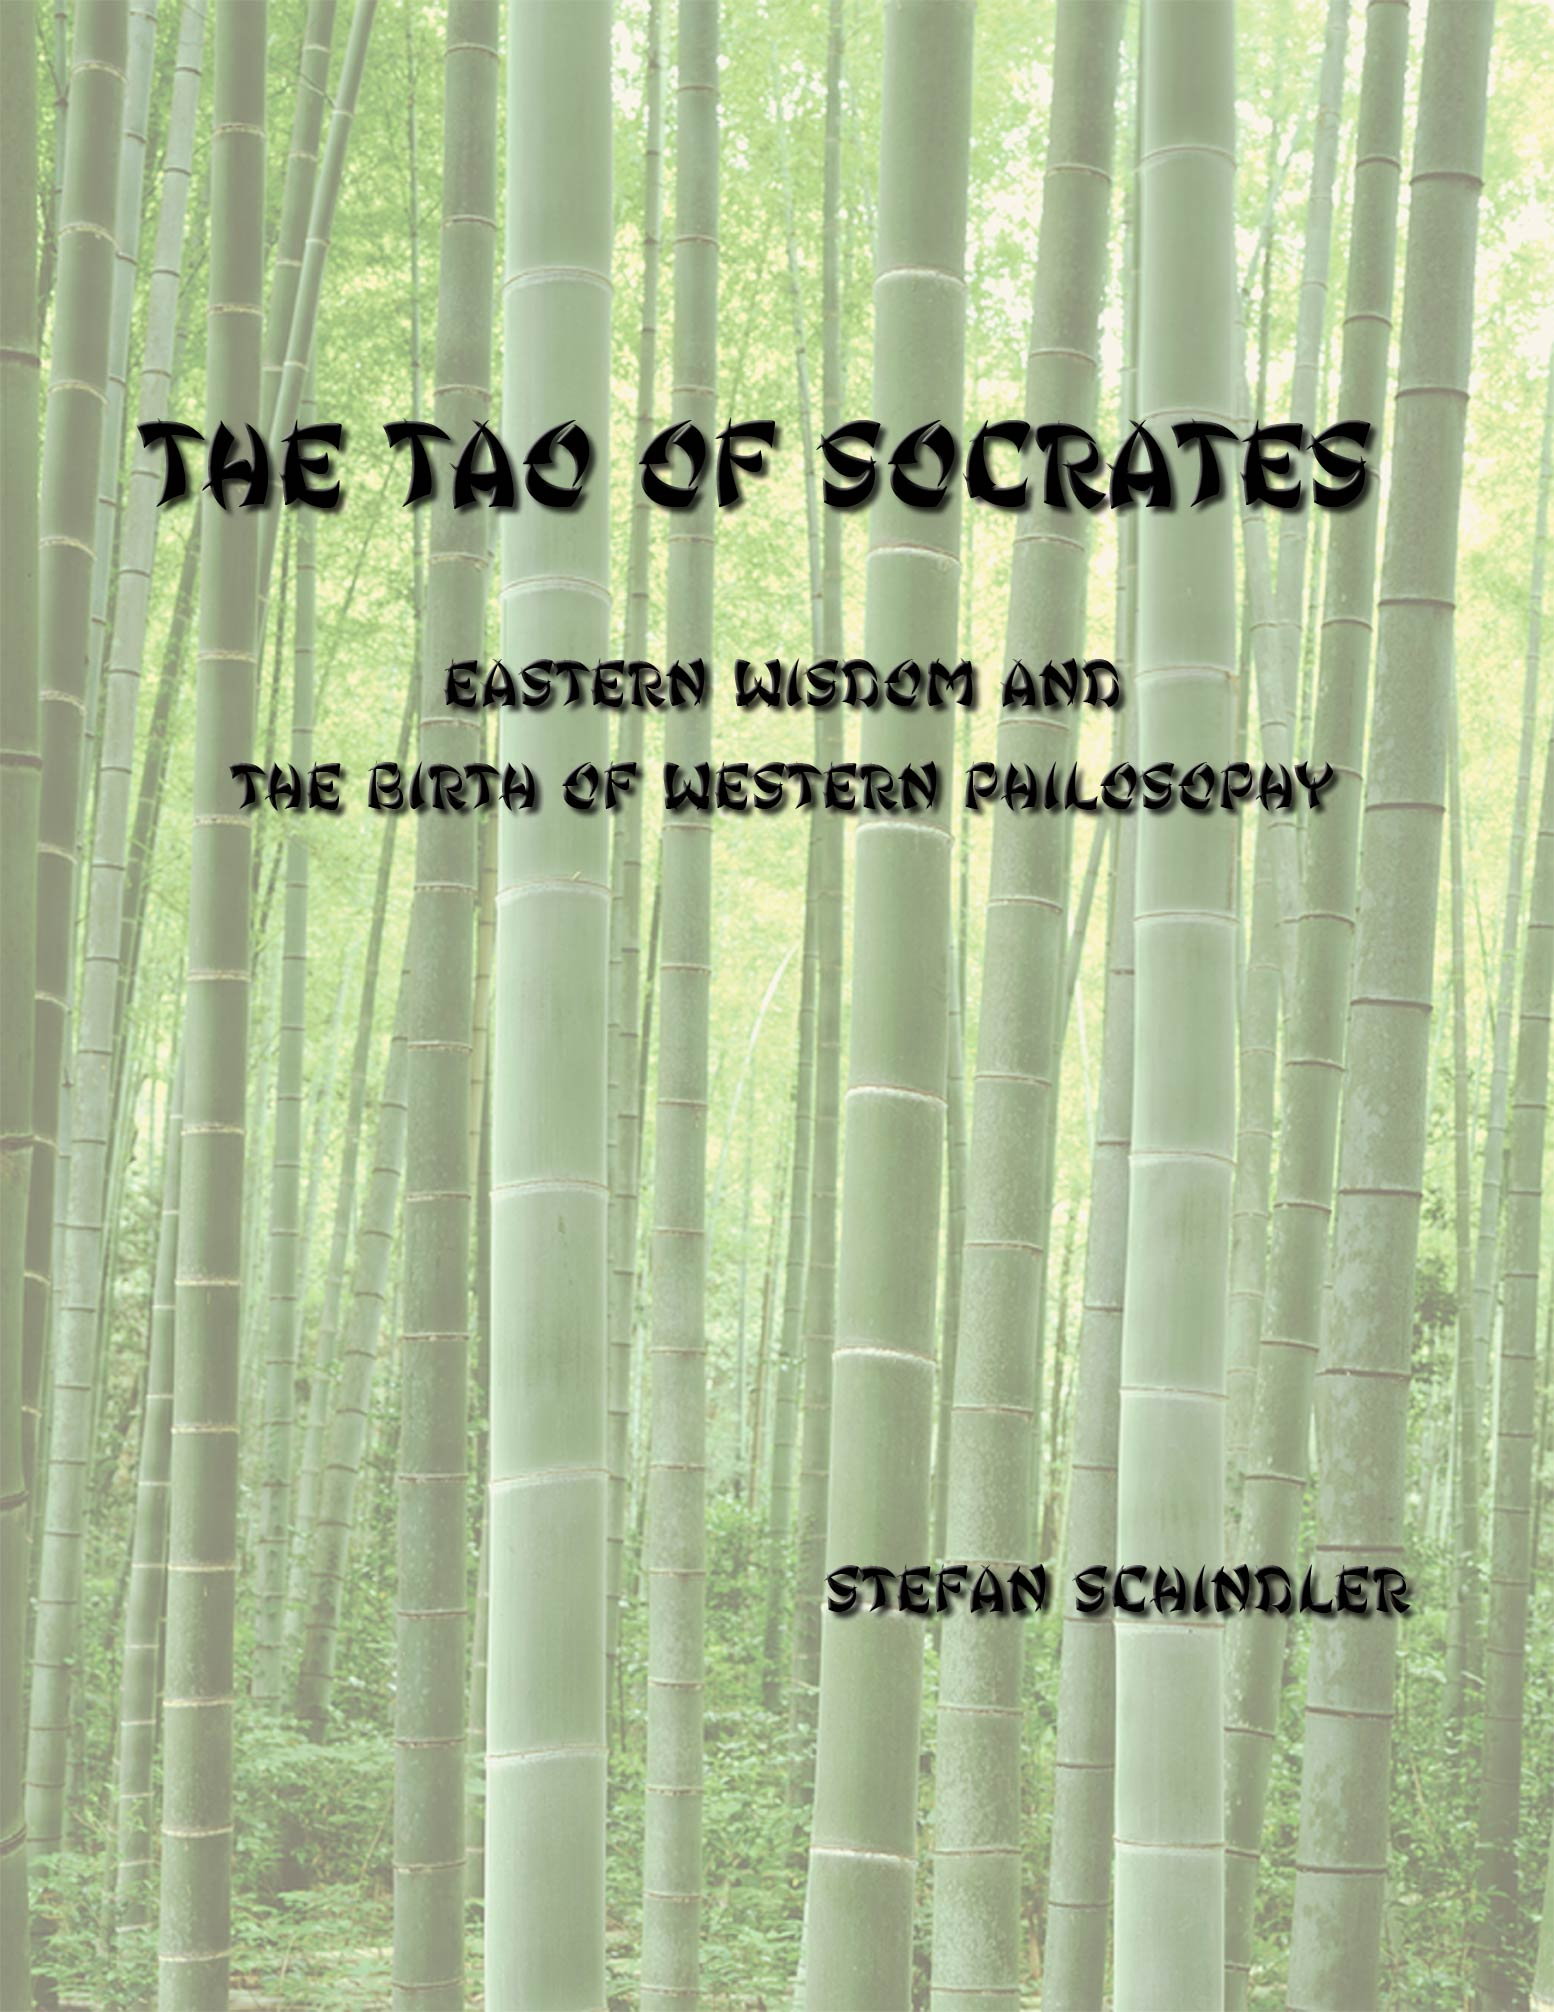 The Tao of Socrates by Stefan Schindler